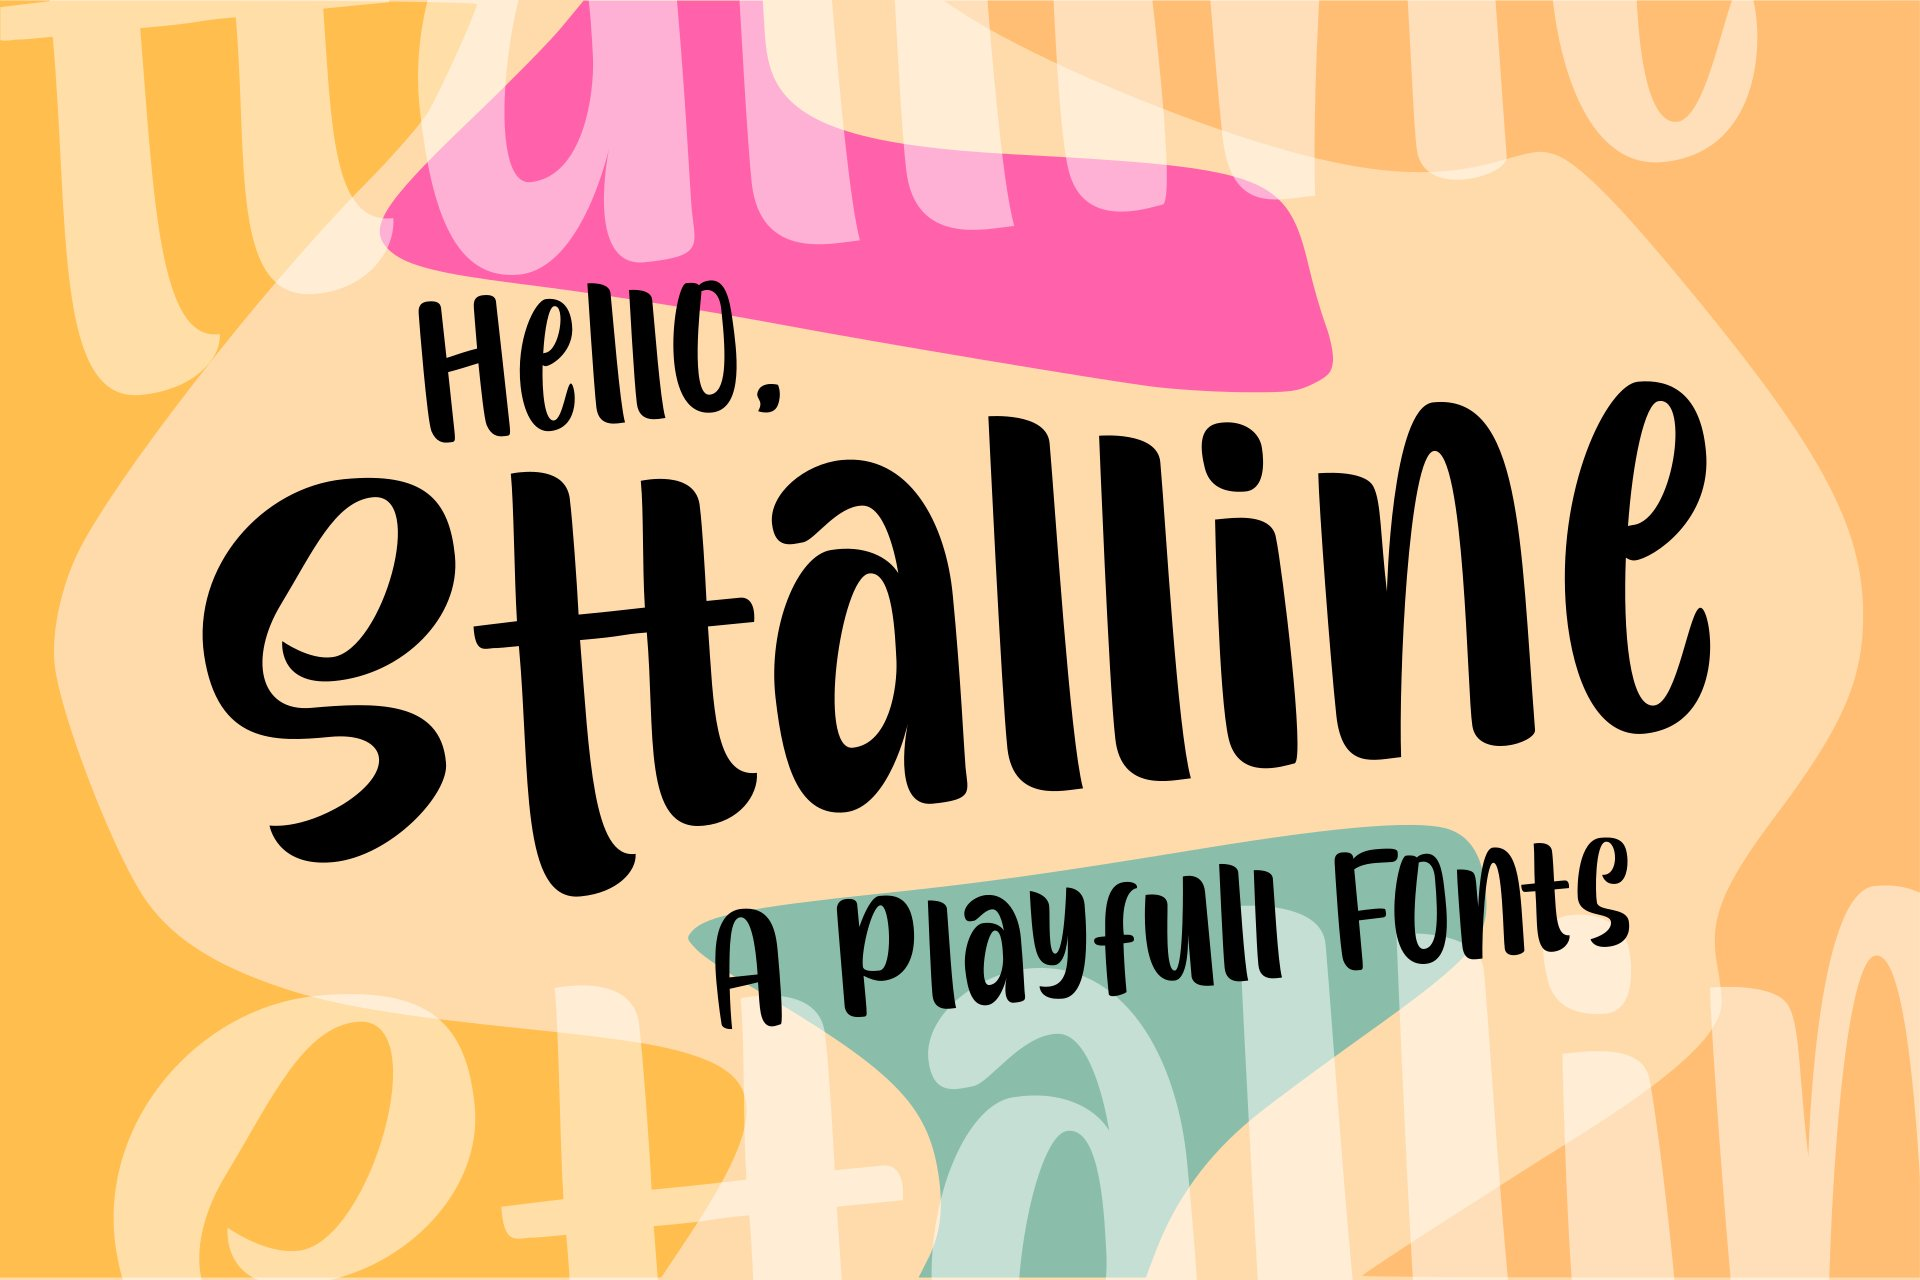 Sttalline | Quirky Fonts example image 1